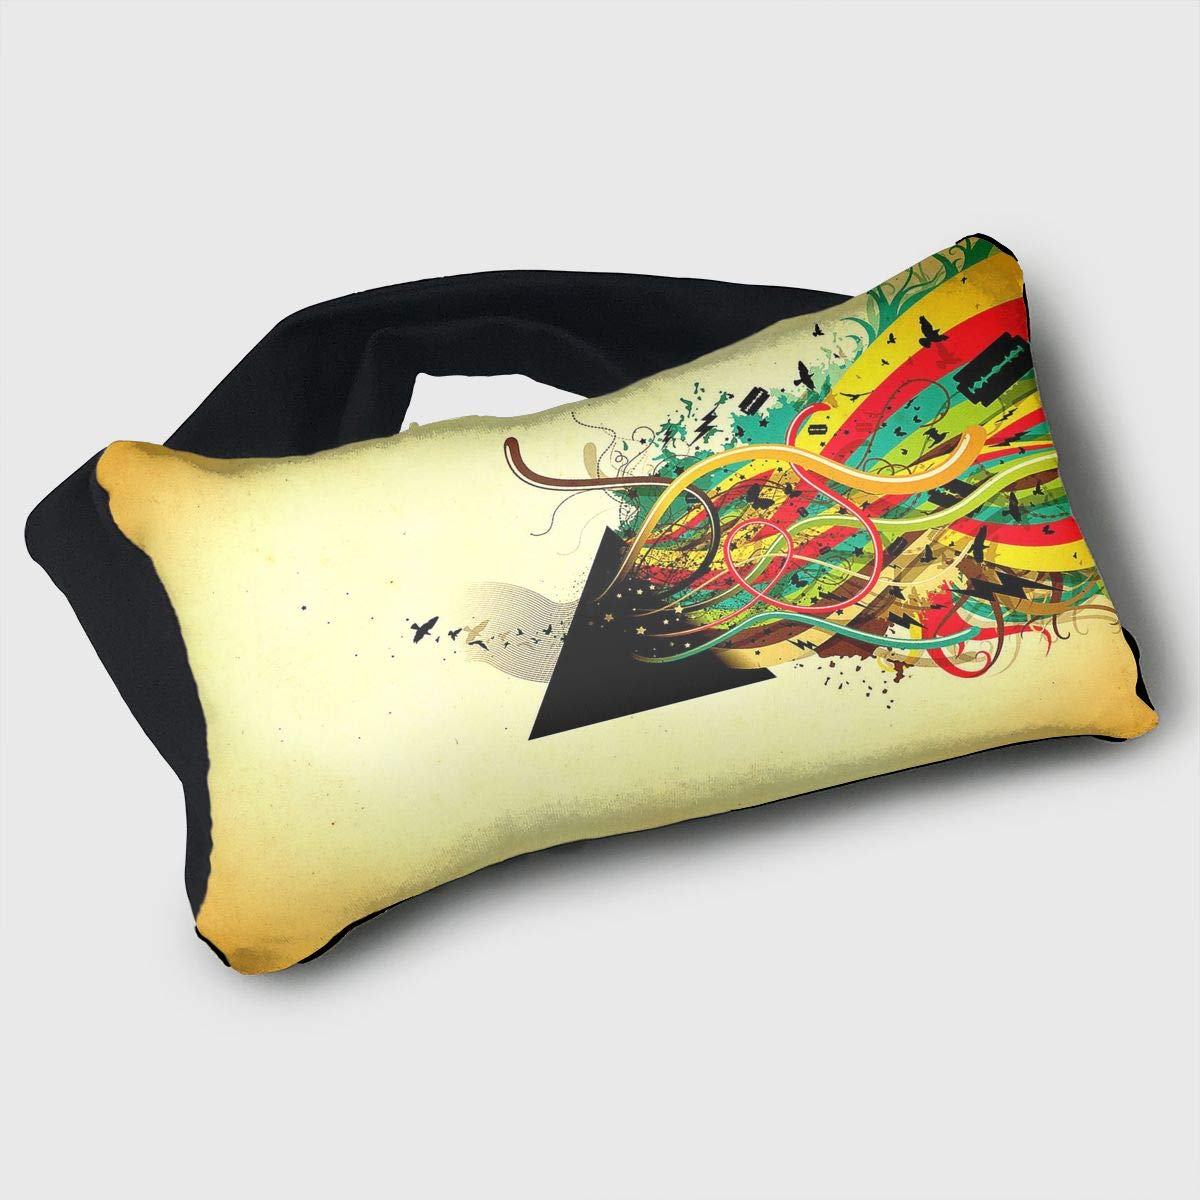 Voyage Travel Pillow Eye Mask 2 in 1 Portable Neck Support Scarf Rock Music Guitar Ergonomic Naps Rest Pillows Sleeper Versatile for Airplanes Car Train Bus Home Office